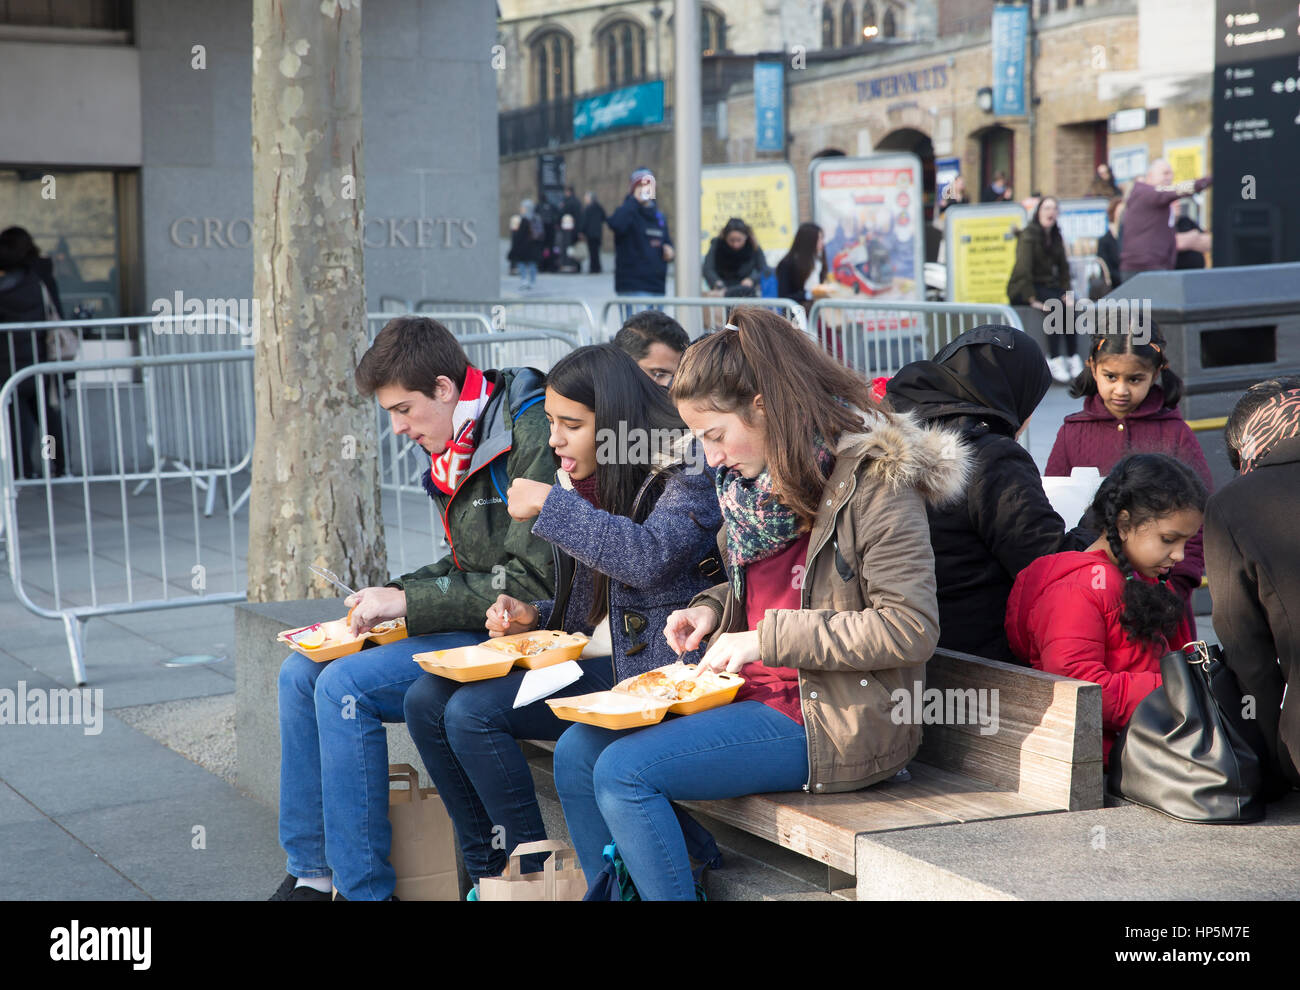 London, UK. 18th February, 2017. People enjoy the warm sunshine in London. © Keith Larby/Alamy Live News - Stock Image